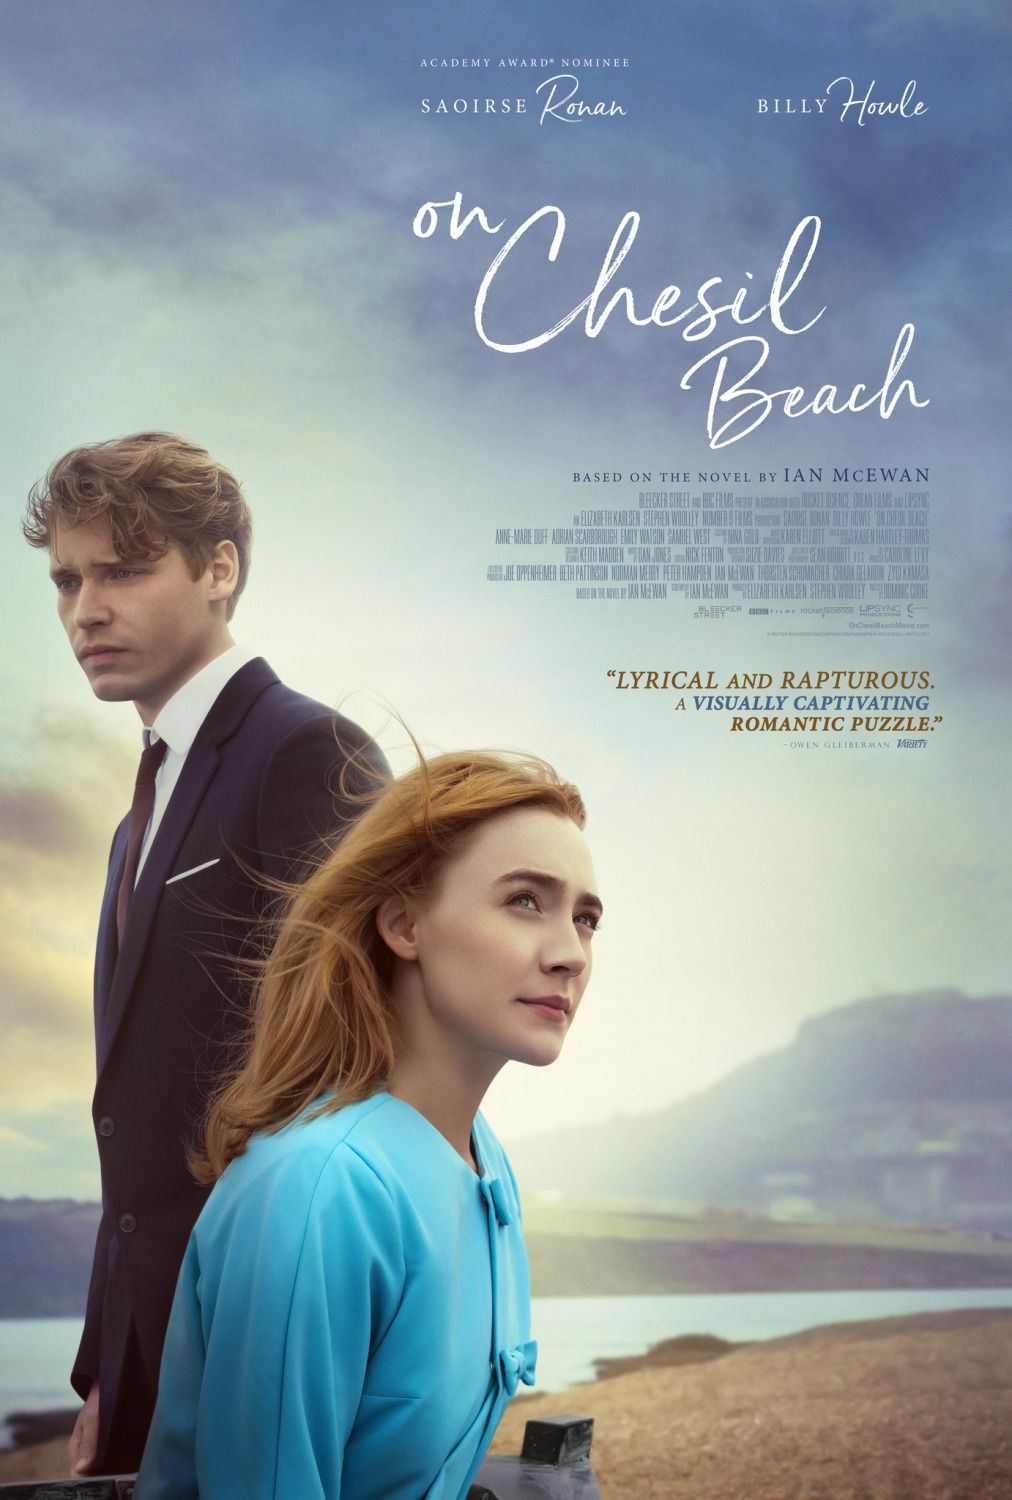 On Chesil Beach - Cast: Saoirse Ronan, Billy Howle - film poster 2018